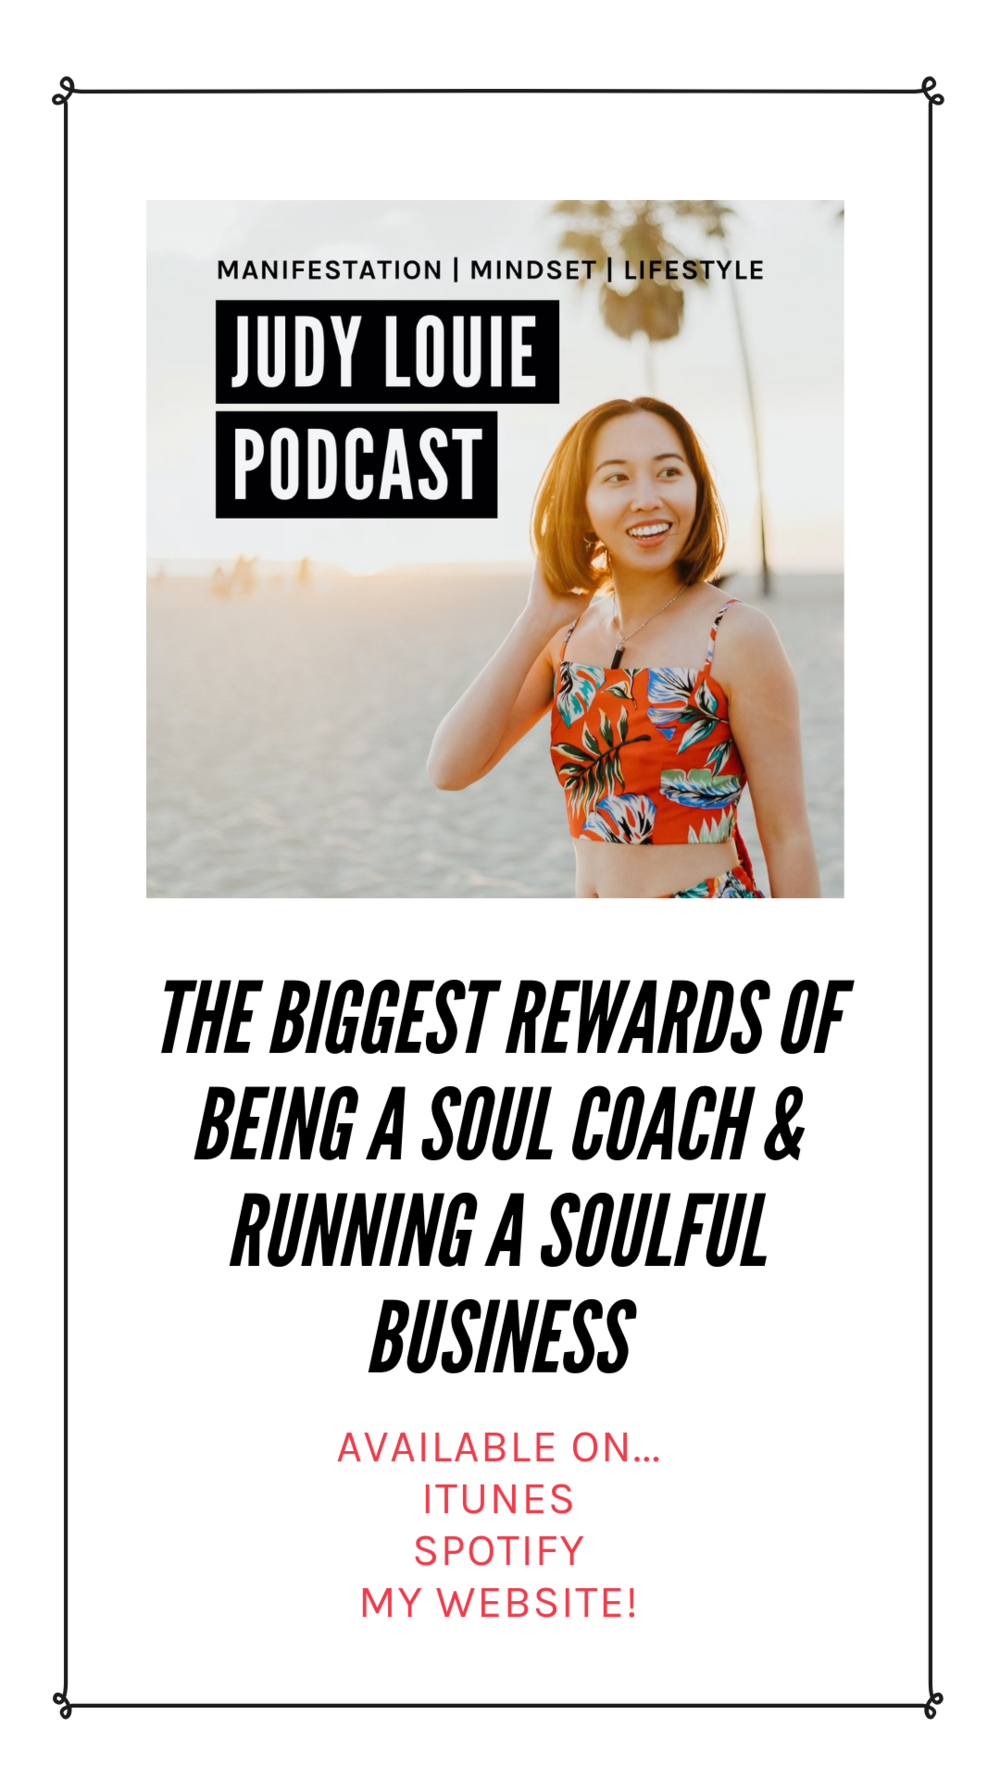 judy louie podcast - soulful business.png